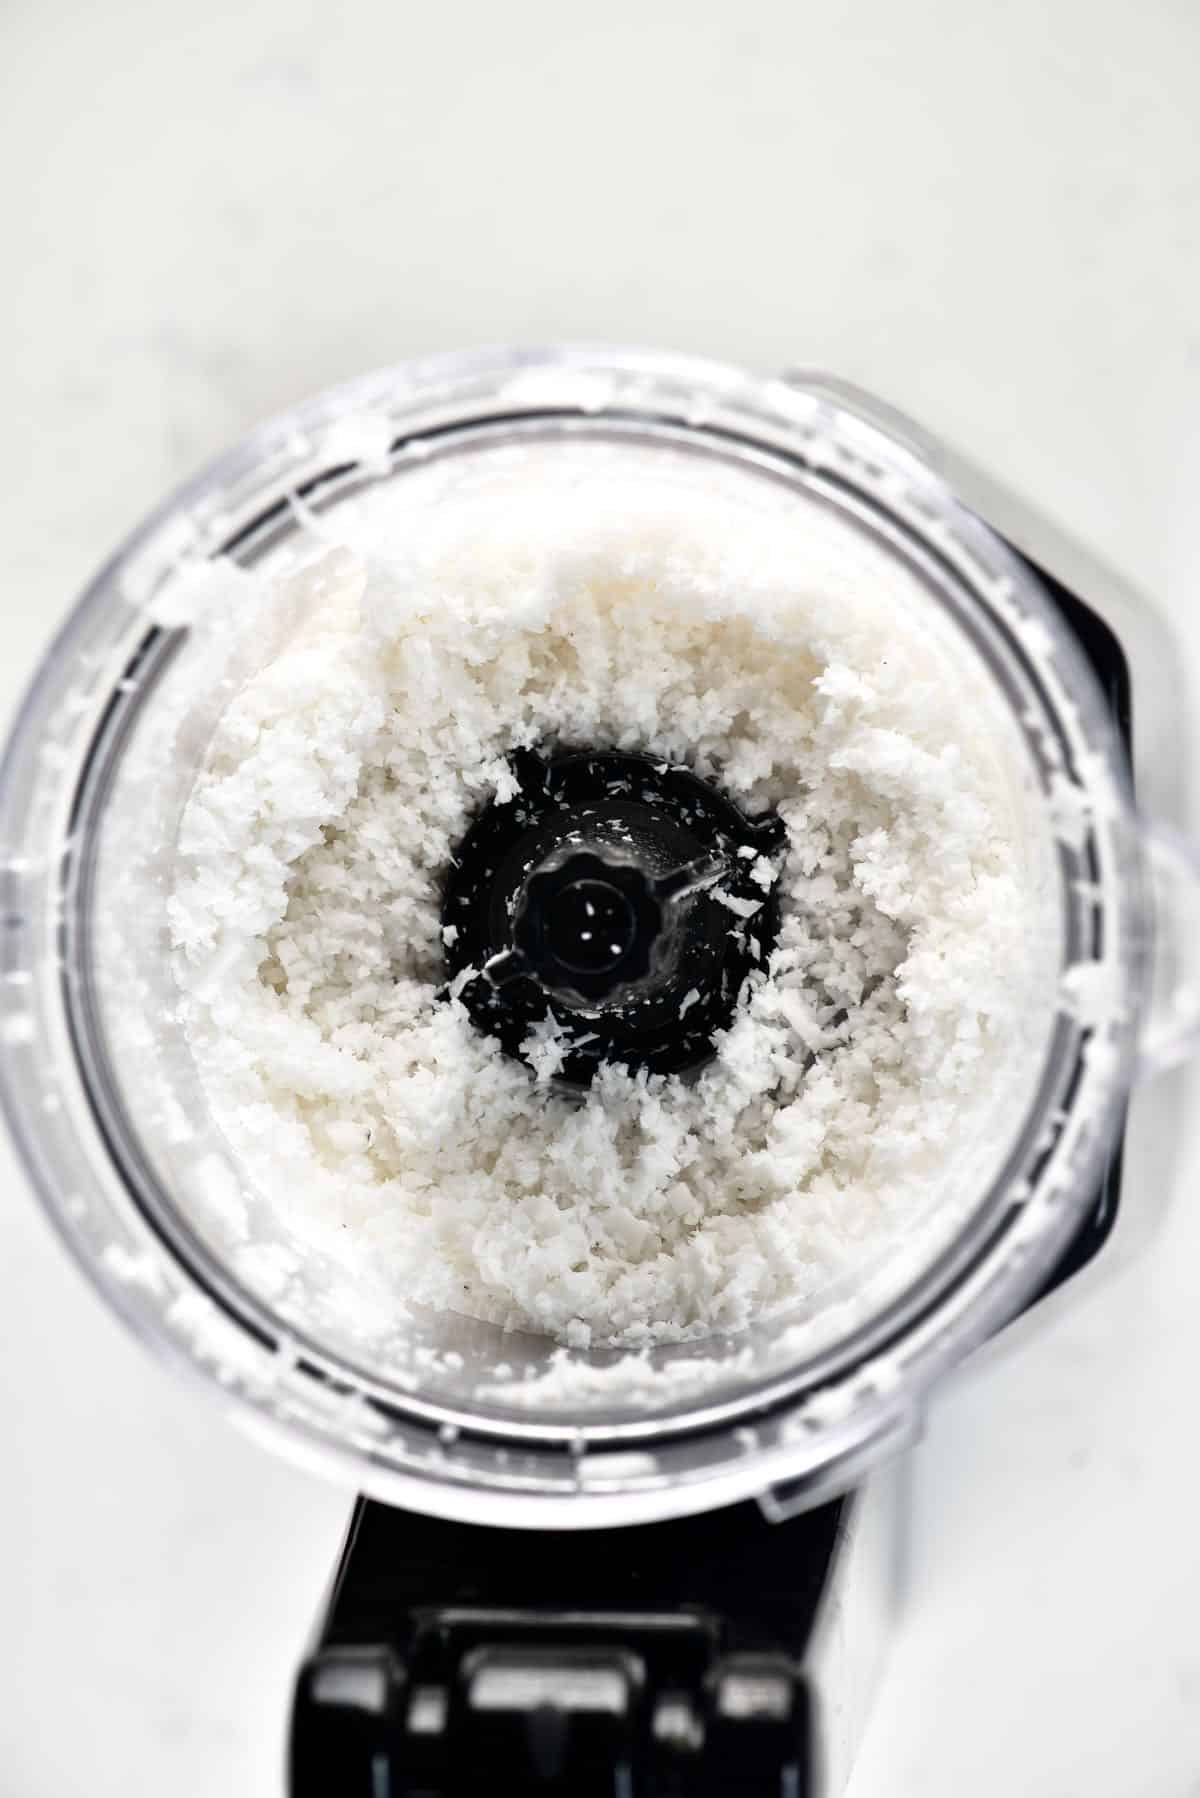 Shredded Coconut in a blender